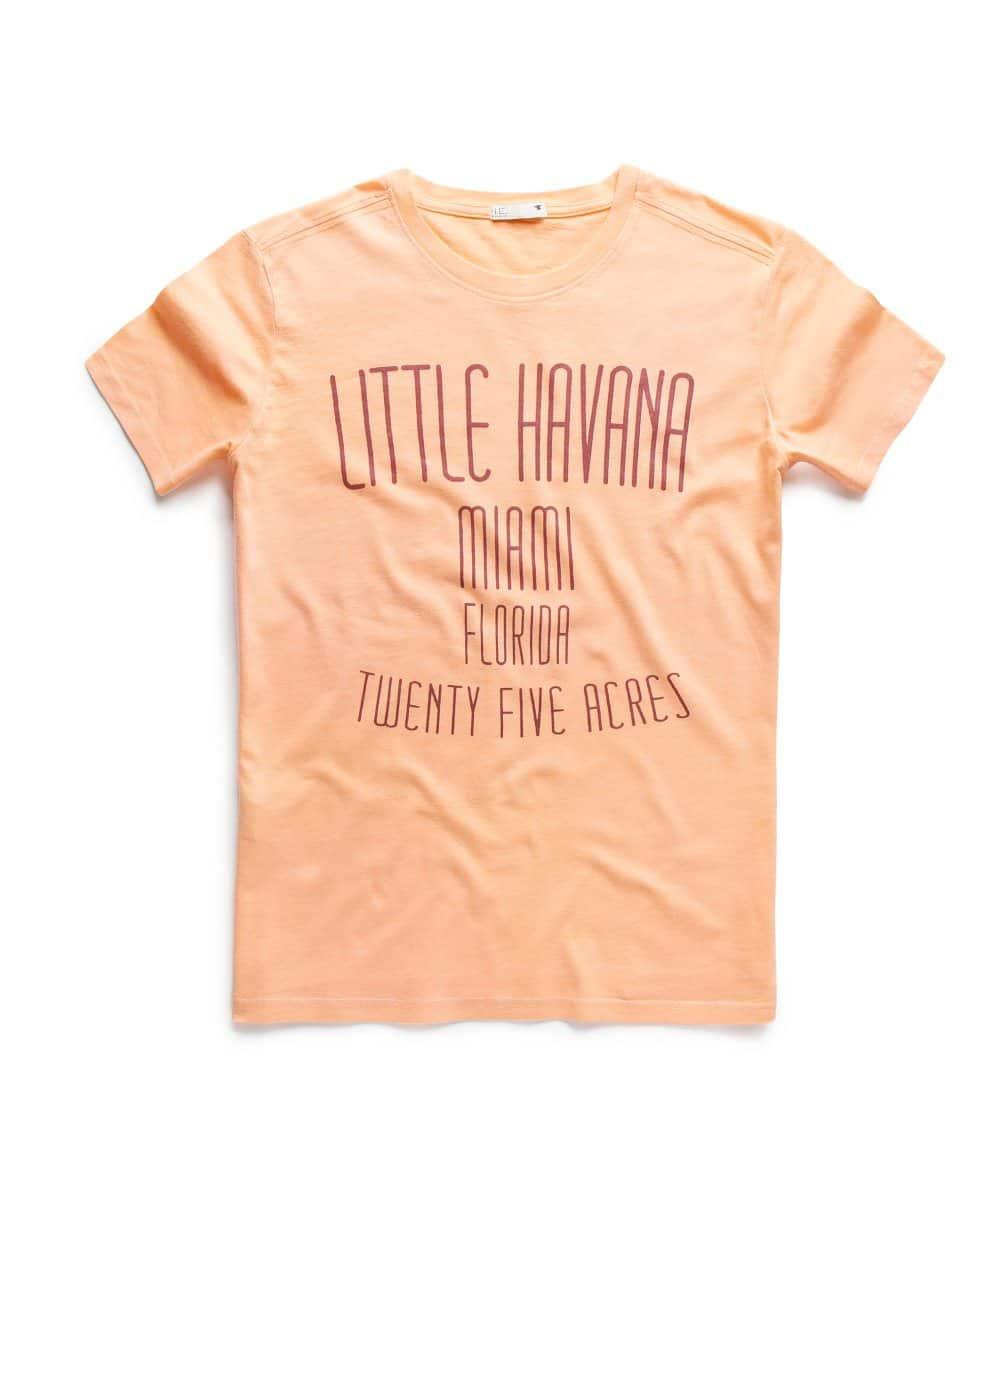 The Havana t-shirt